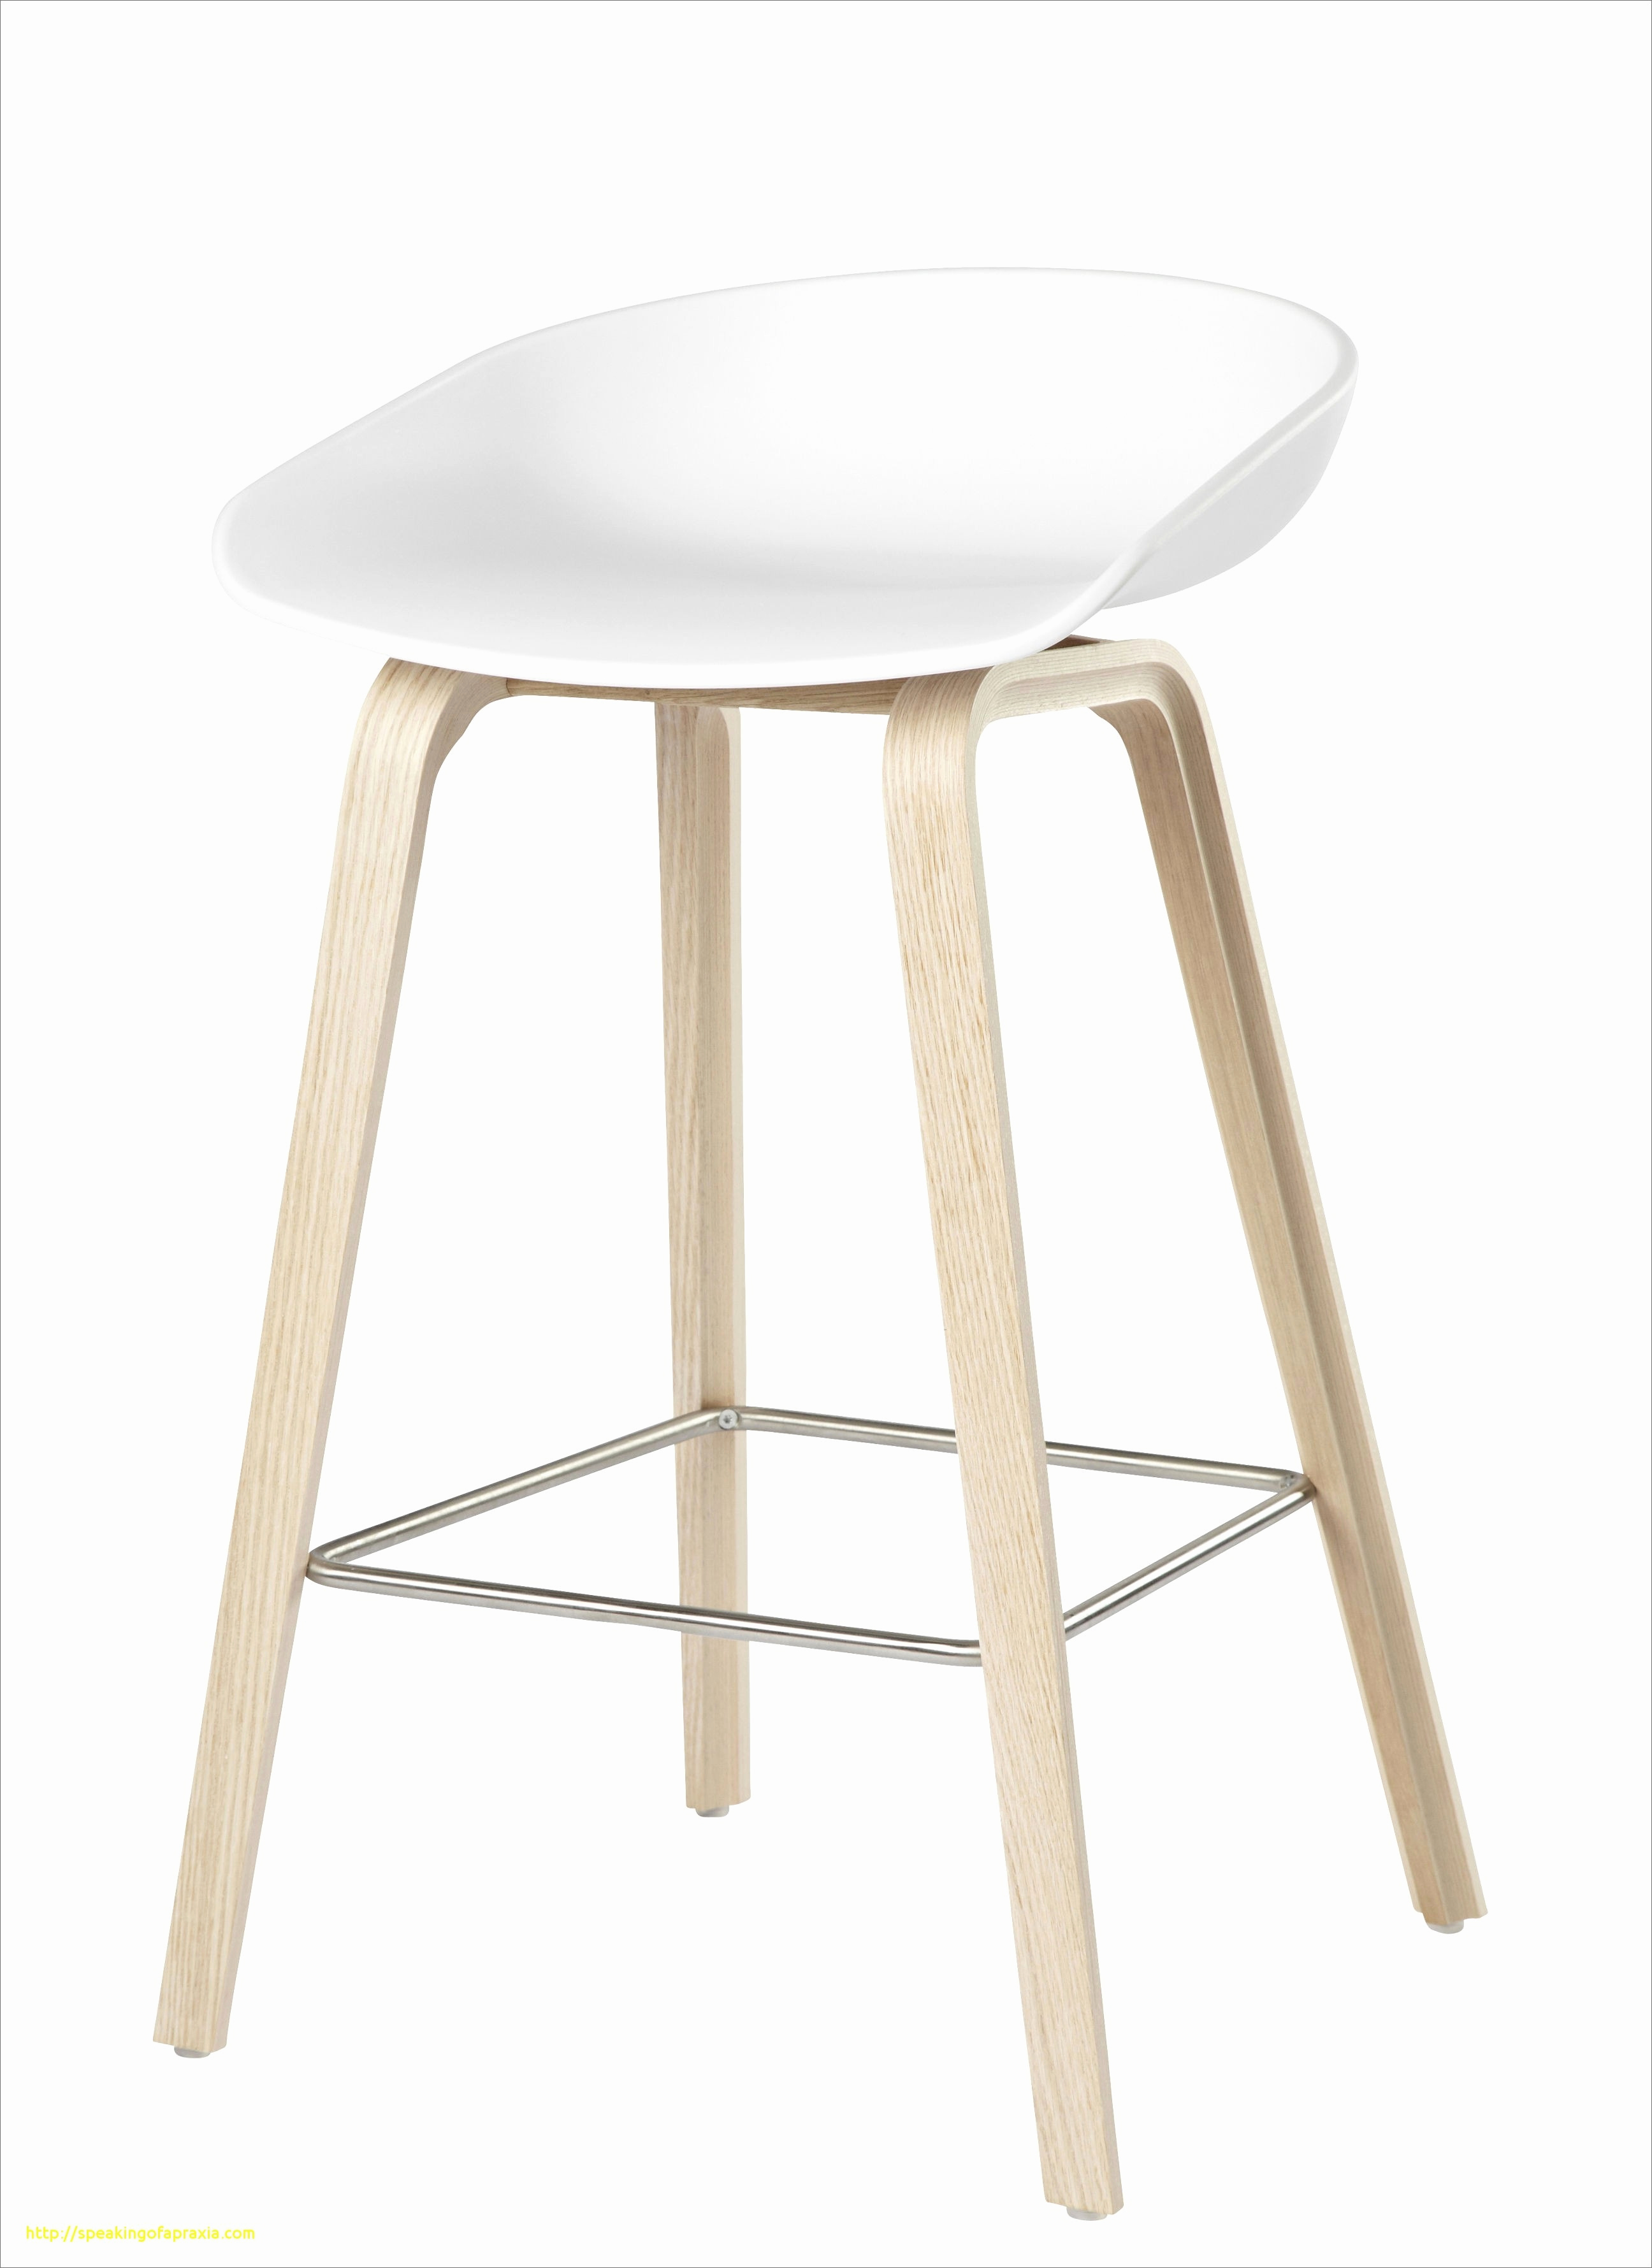 Tabouret De Bar Hauteur 60 Cm.Tabouret De Bar Hauteur Assise 60 Cm Boutique Gain De Place Fr